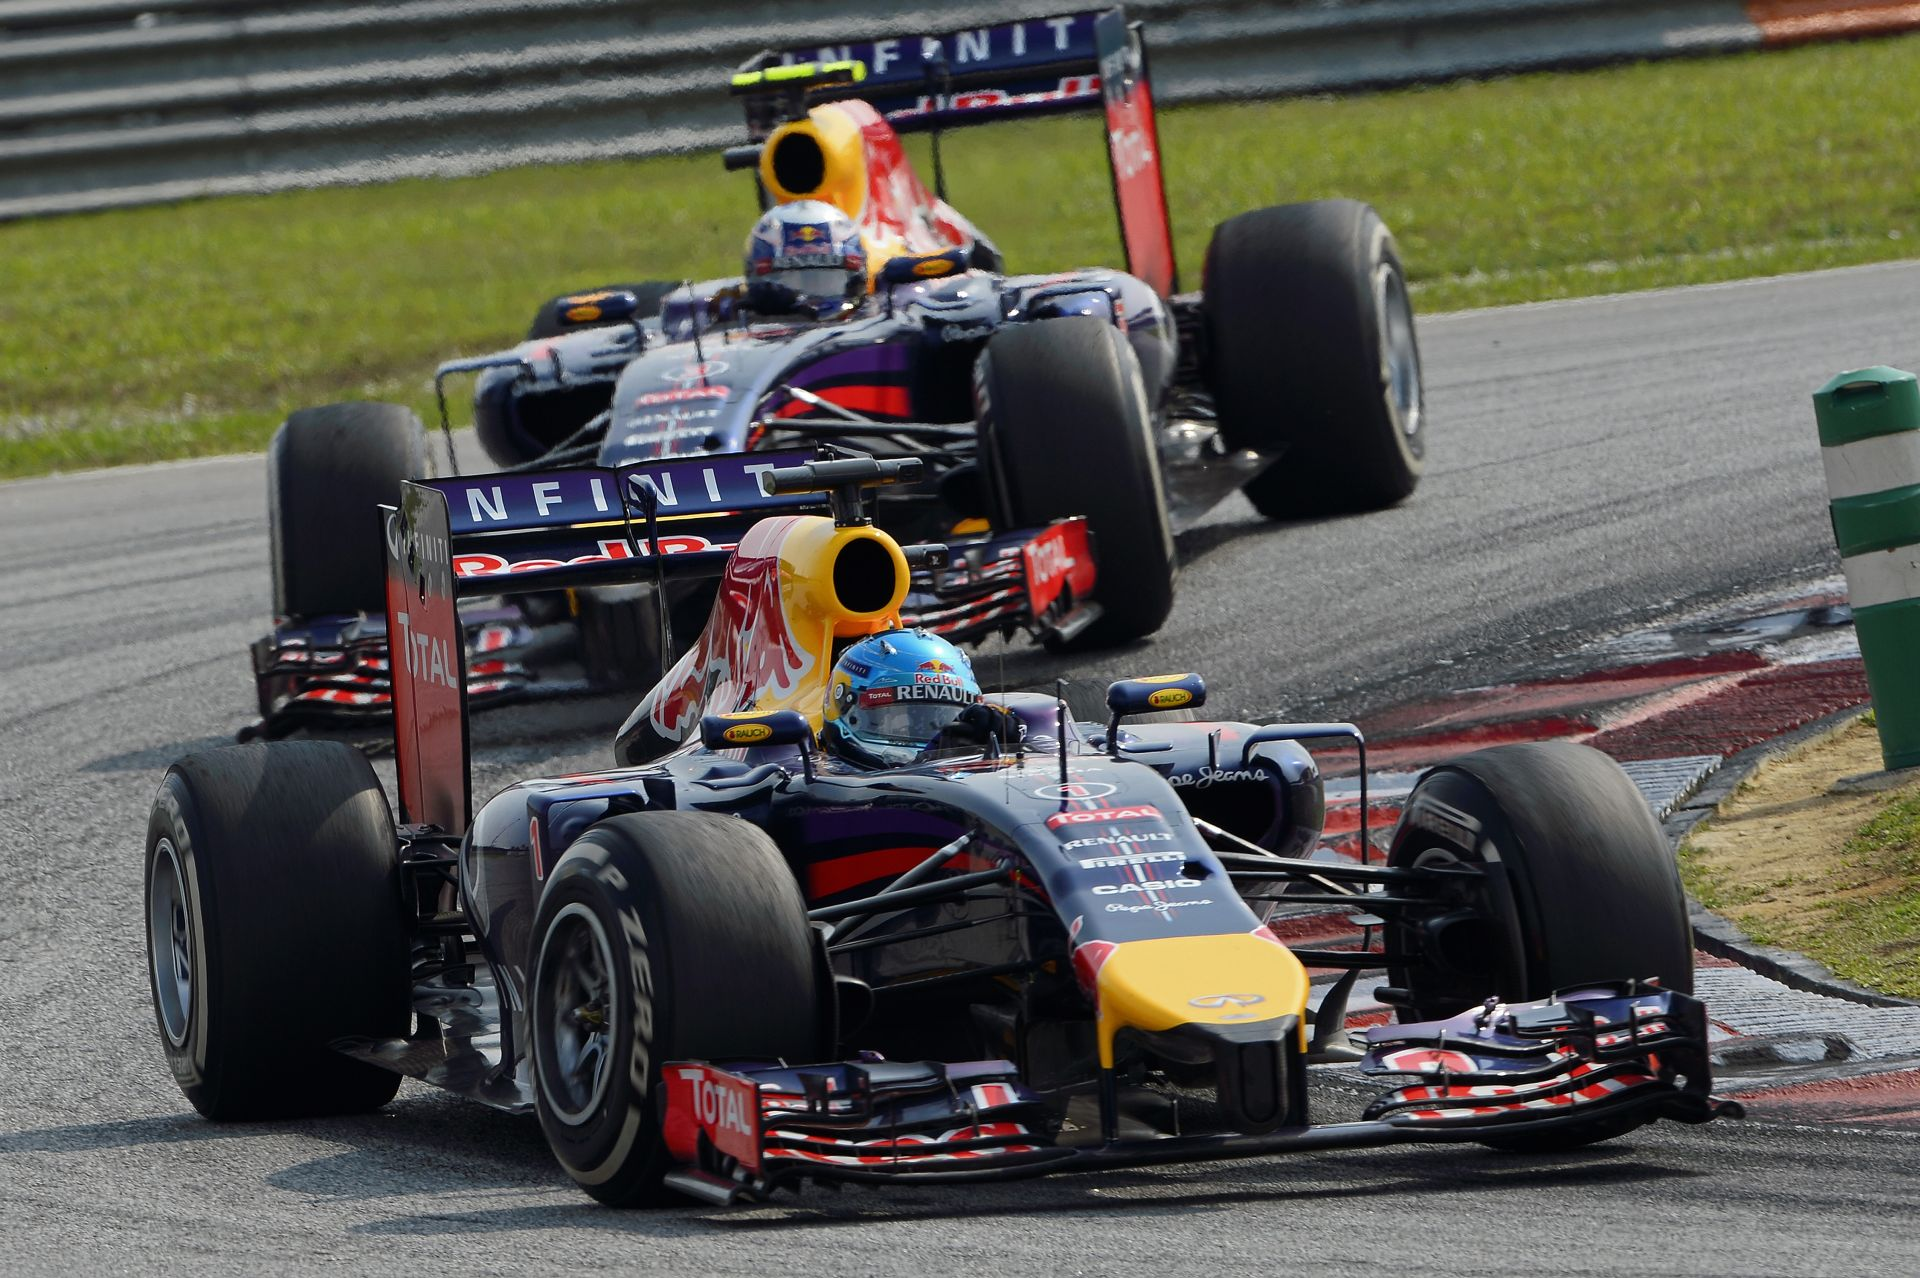 Horner: A Red Bull hamarosan befoghatja a Mercedest